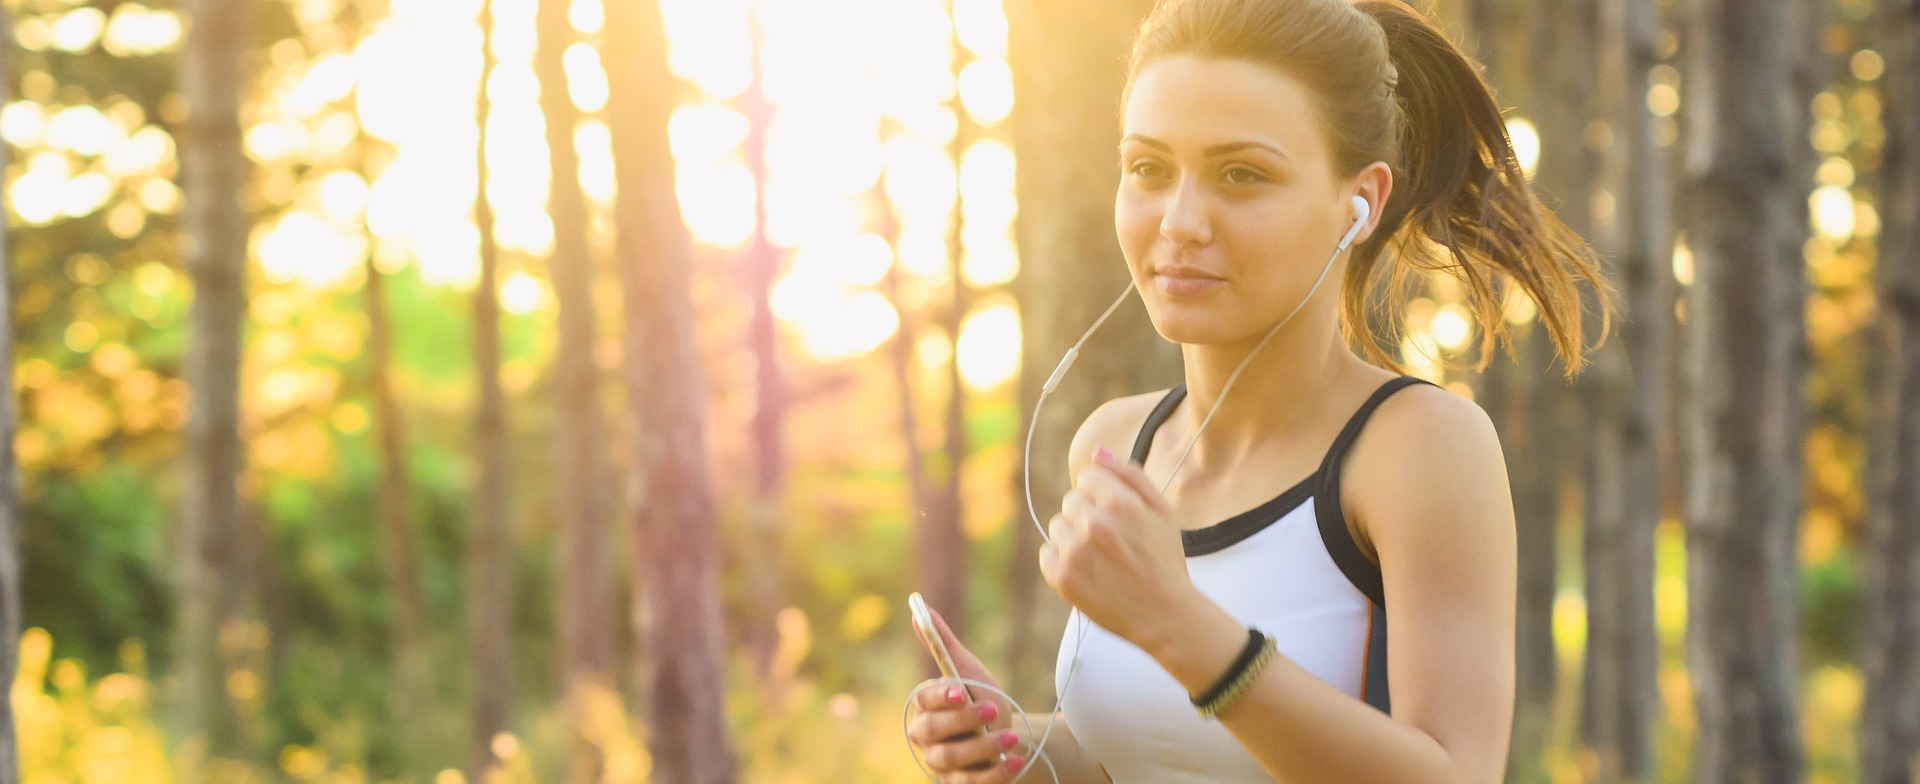 Exercising this summer? Here's how to handle the heat